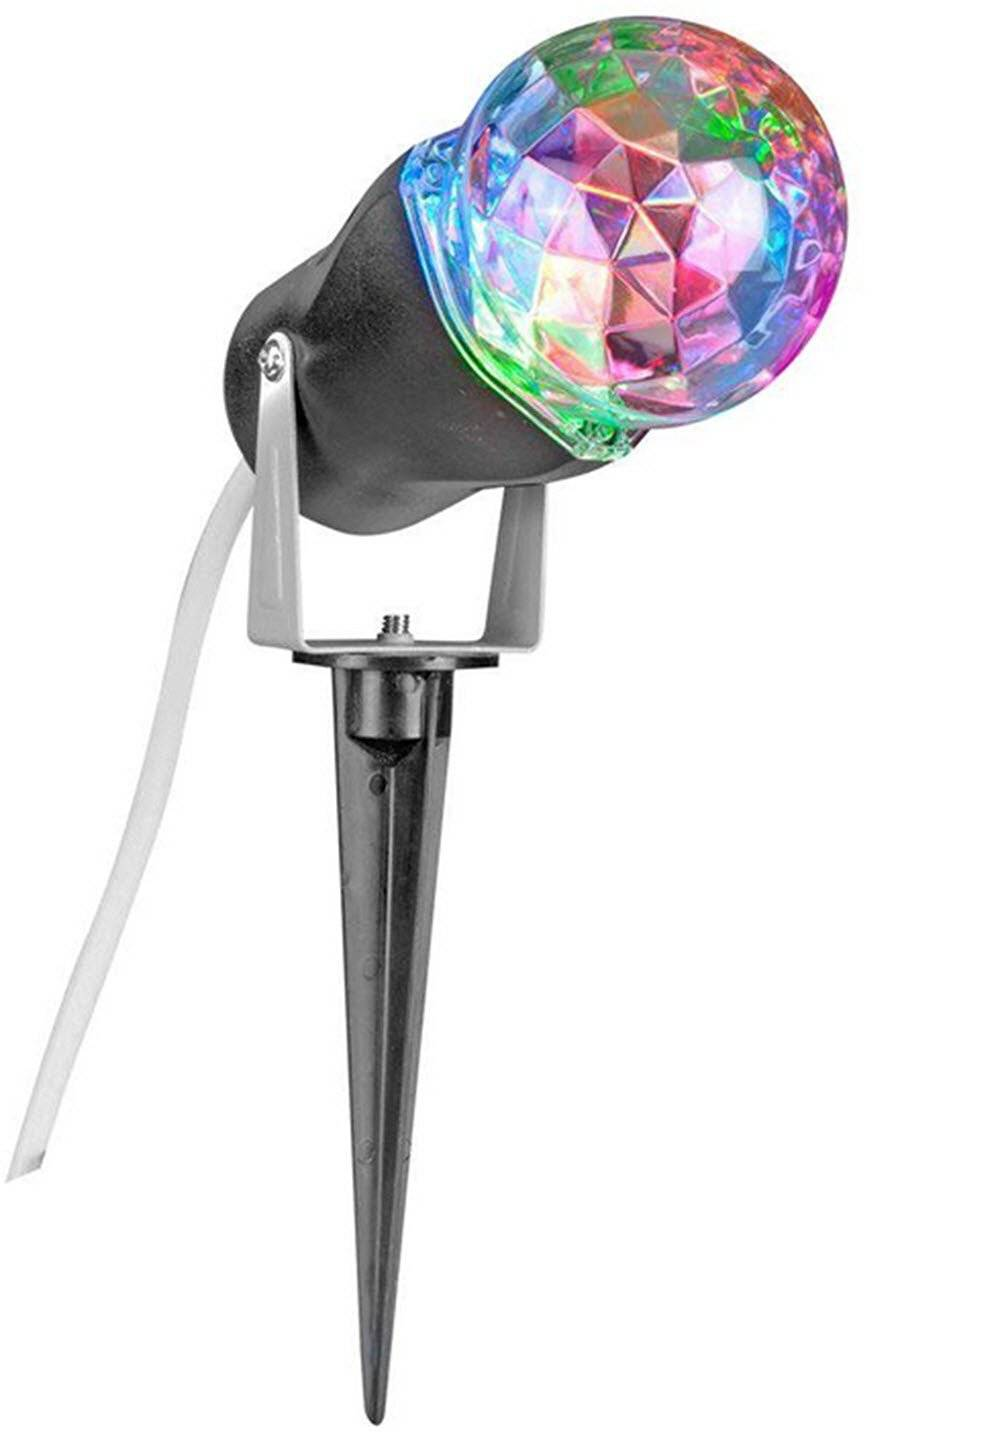 Lightshow Kaleidoscope Colors Projection Stake Holiday Spotlight Light for Christmas